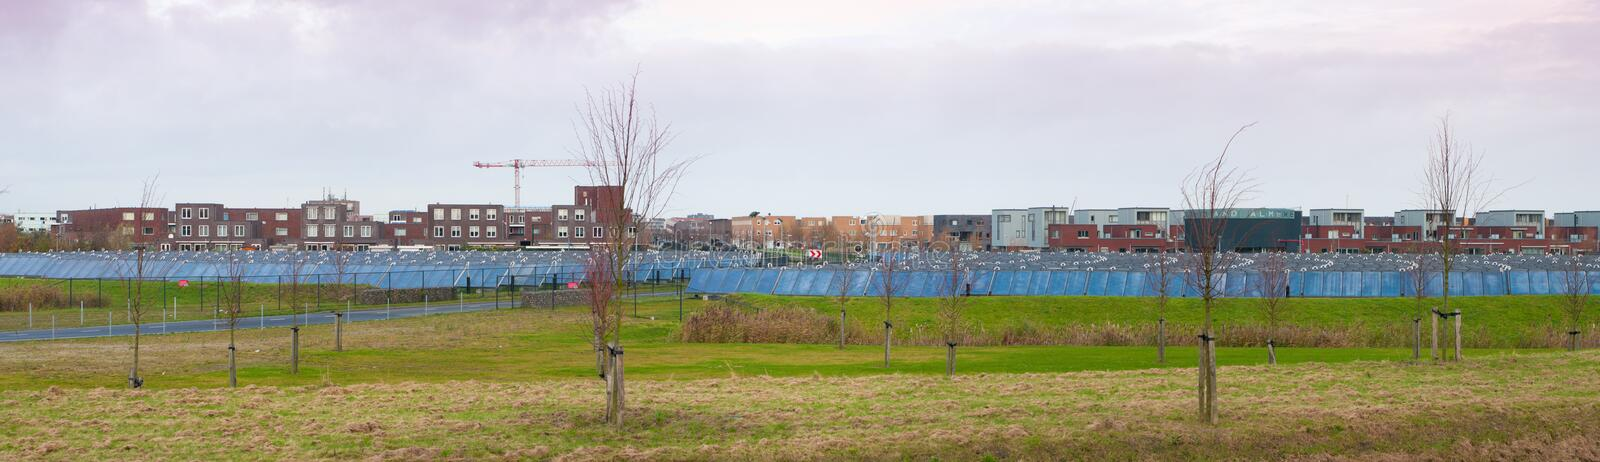 Sun energy. Area filled with solar collectors in Almere, Netherlands, providing energy for the residential area in the background royalty free stock photos